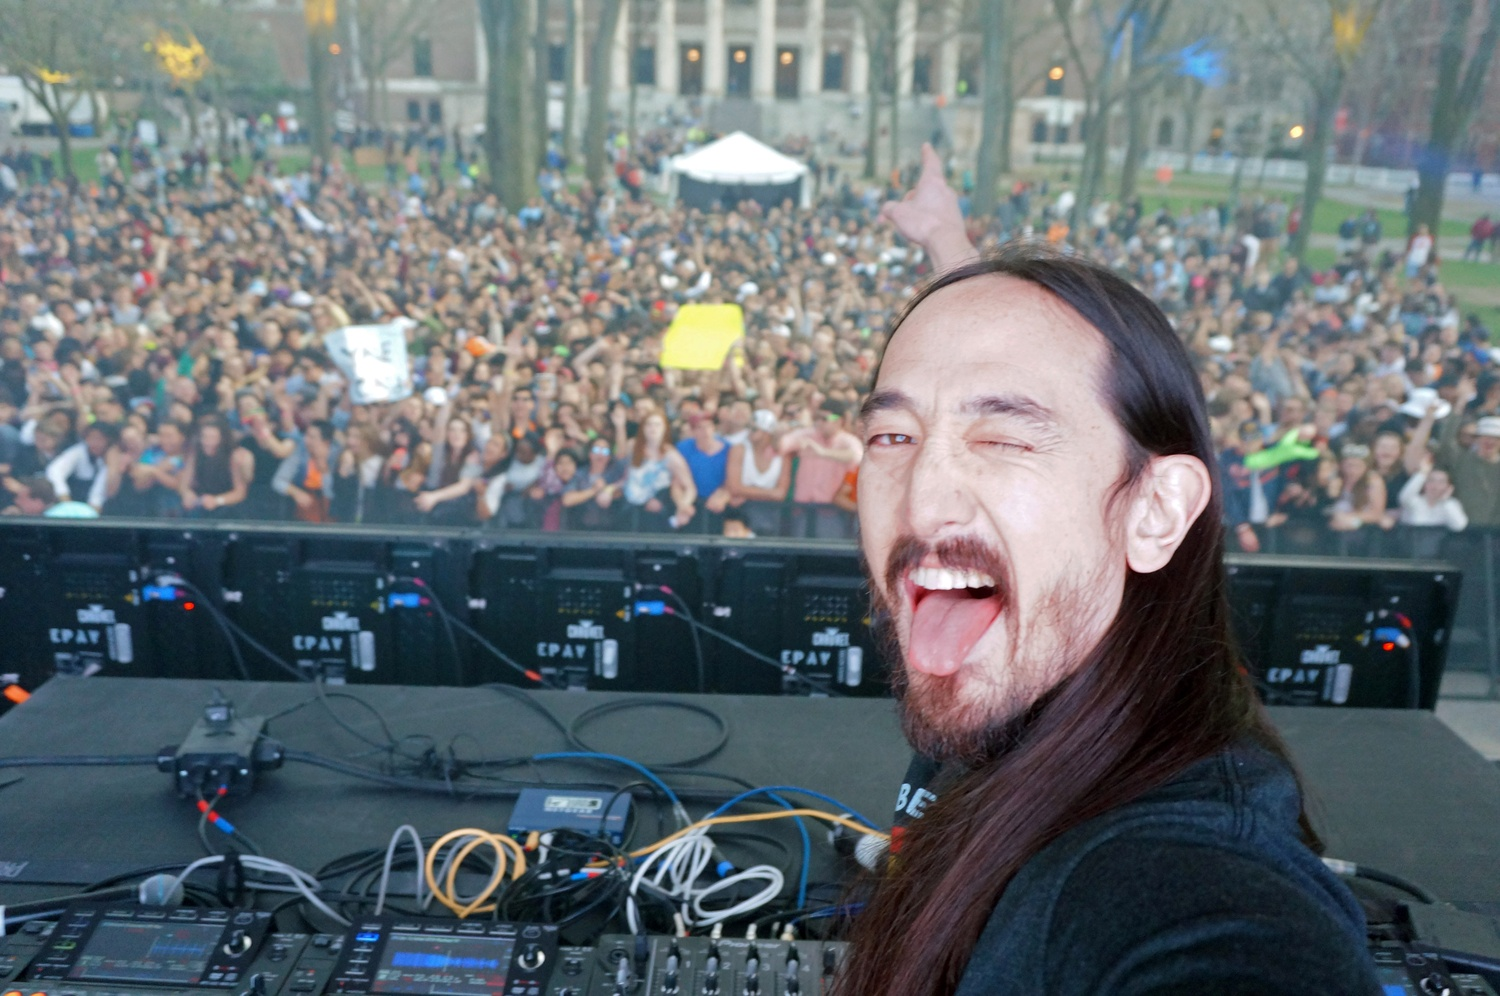 Steve Aoki grabbed Crimson photographer Ryosuke Takashima's camera to snap a quick selfie during Aoki's 2016 Yardfest performance.